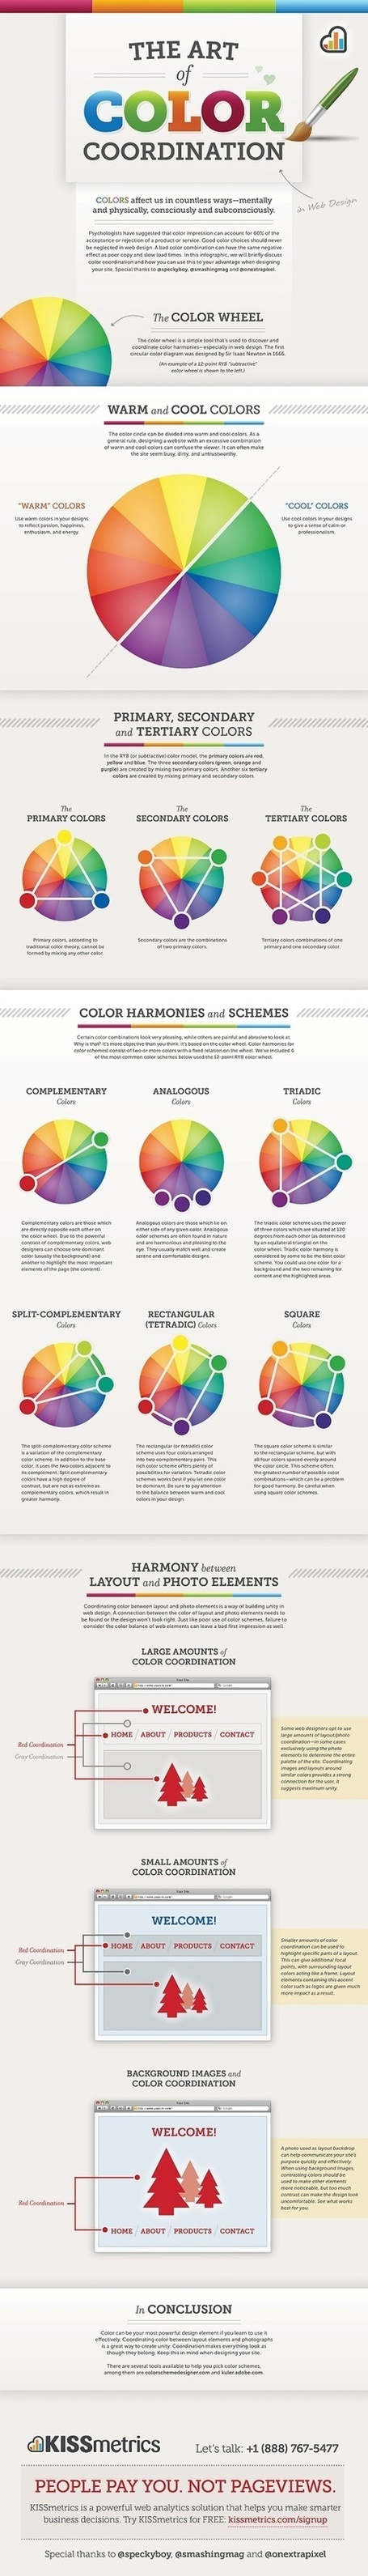 Color Is MASTER of Us All [Infographic] | Design Revolution | Scoop.it